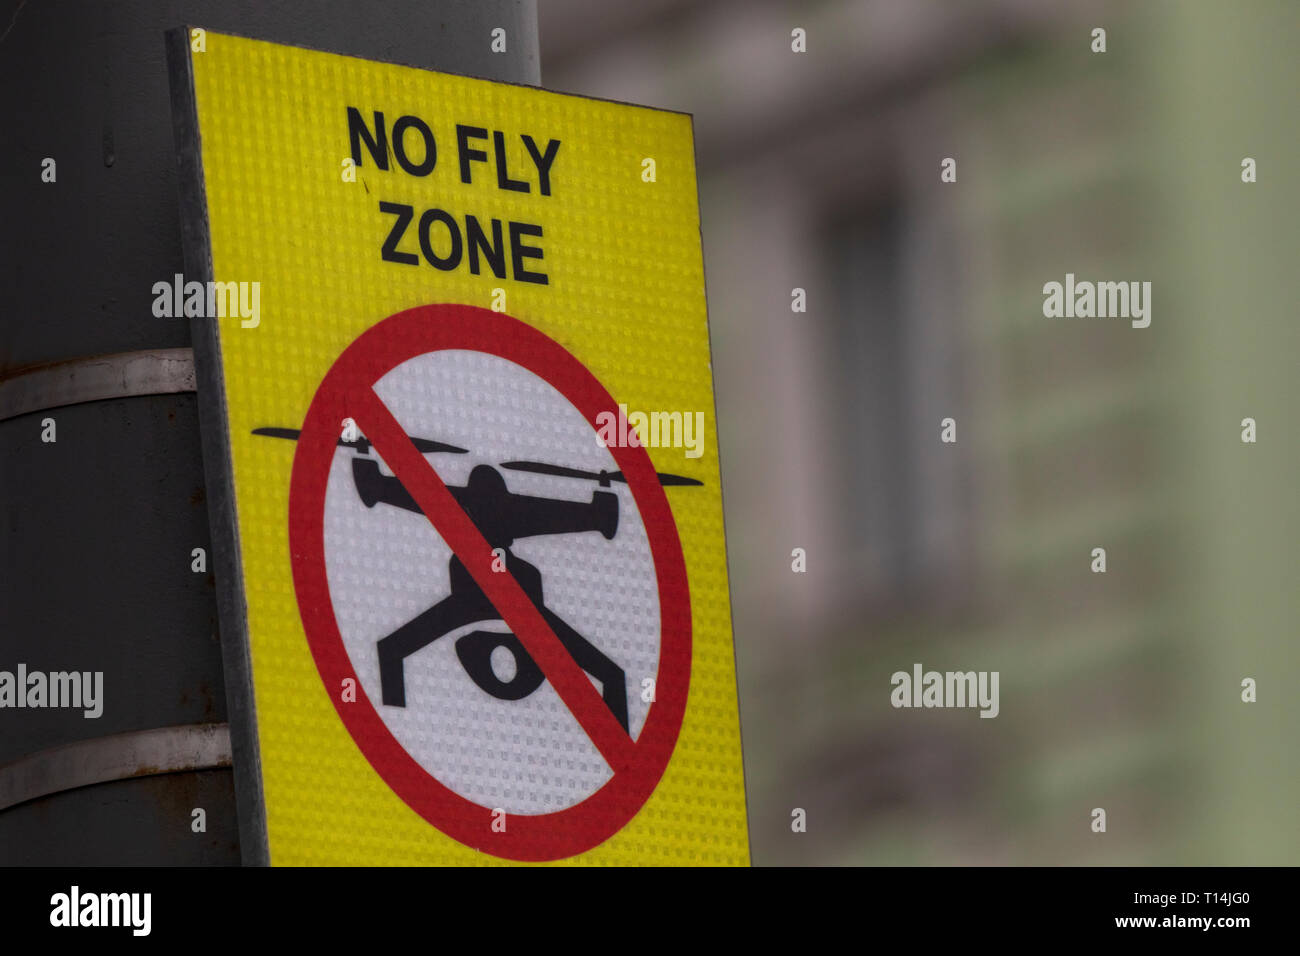 The sign 'No fly zone' prohibiting flights of light aircraft is installed in a center of a city - Stock Image